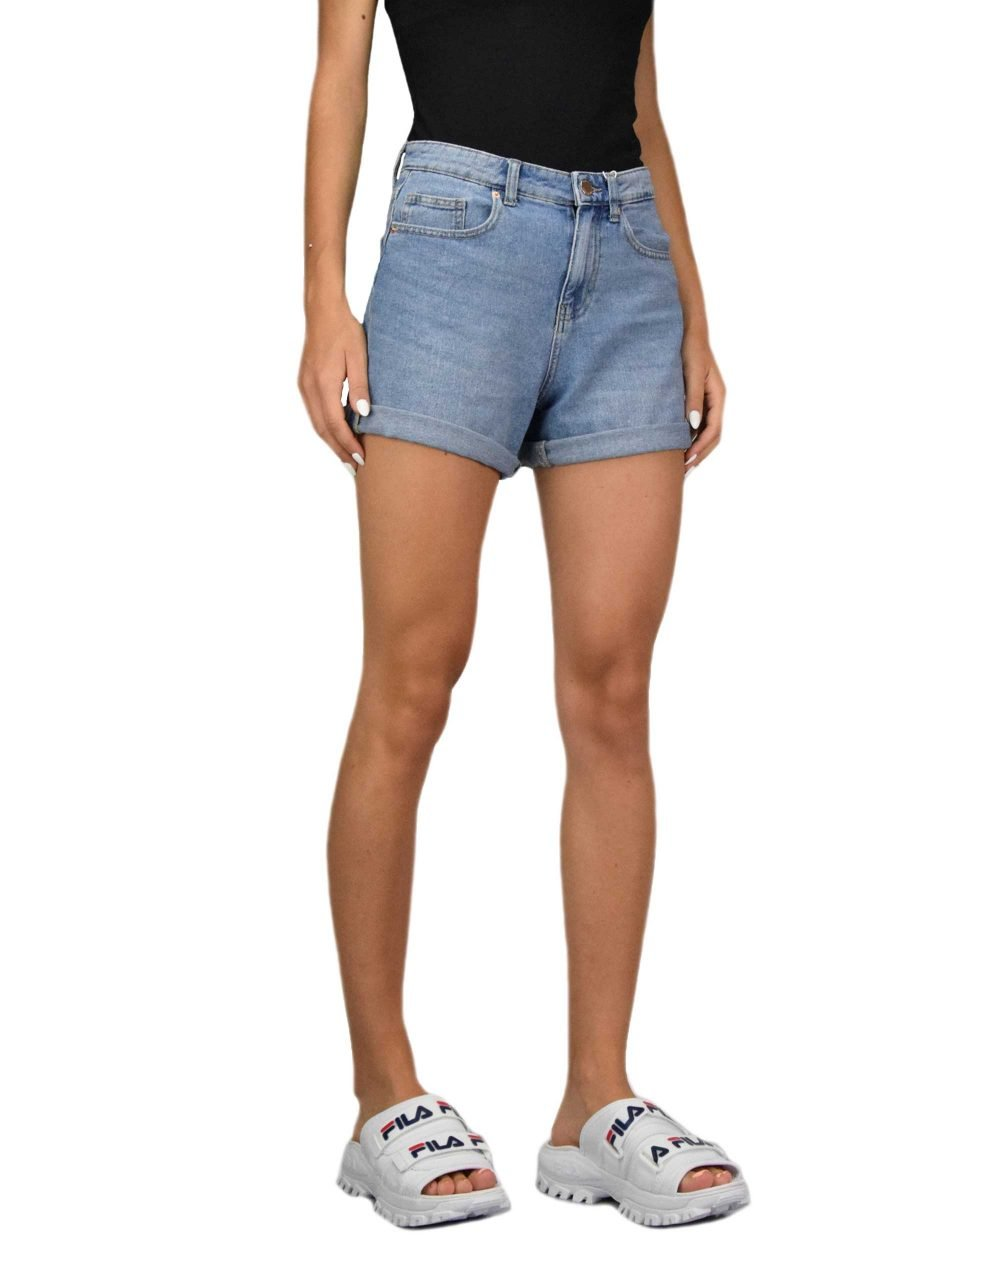 Only Phine Life Shorts (15196224 LBD) Light Blue Denim